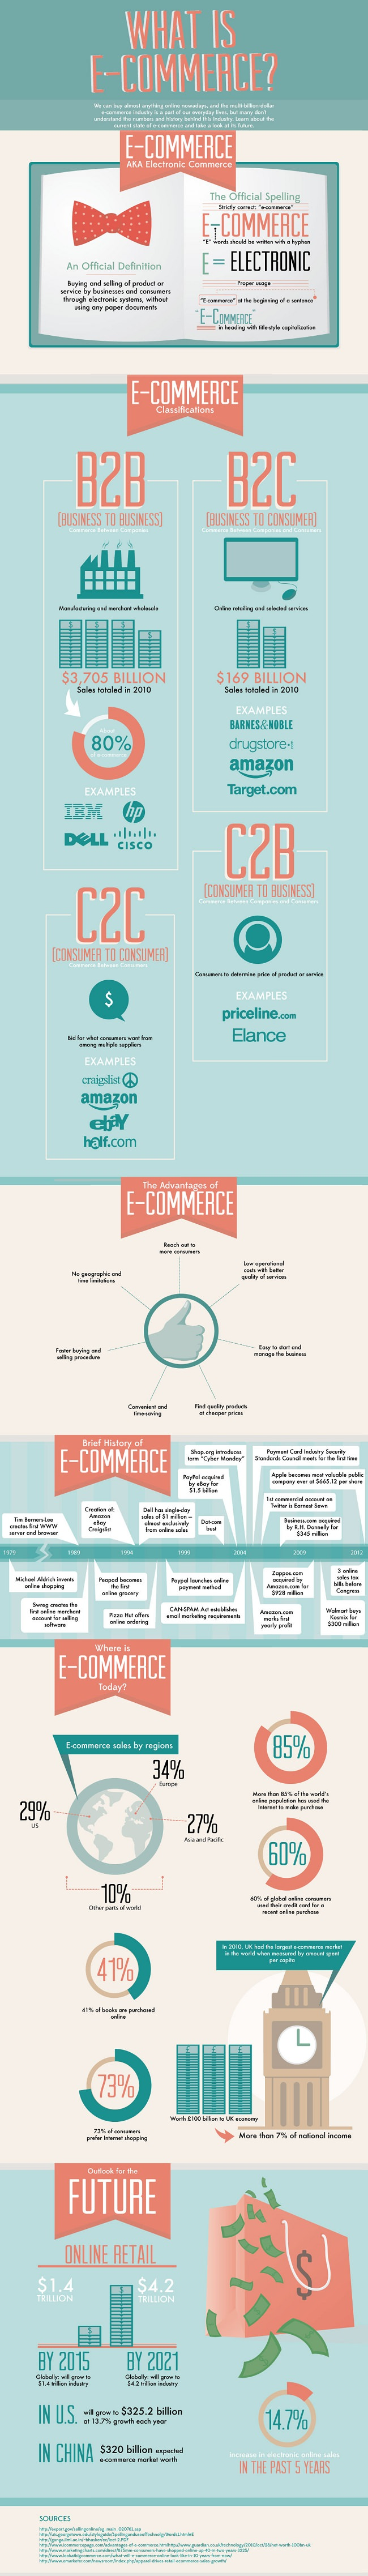 What-Is-eCommerce-Infographic